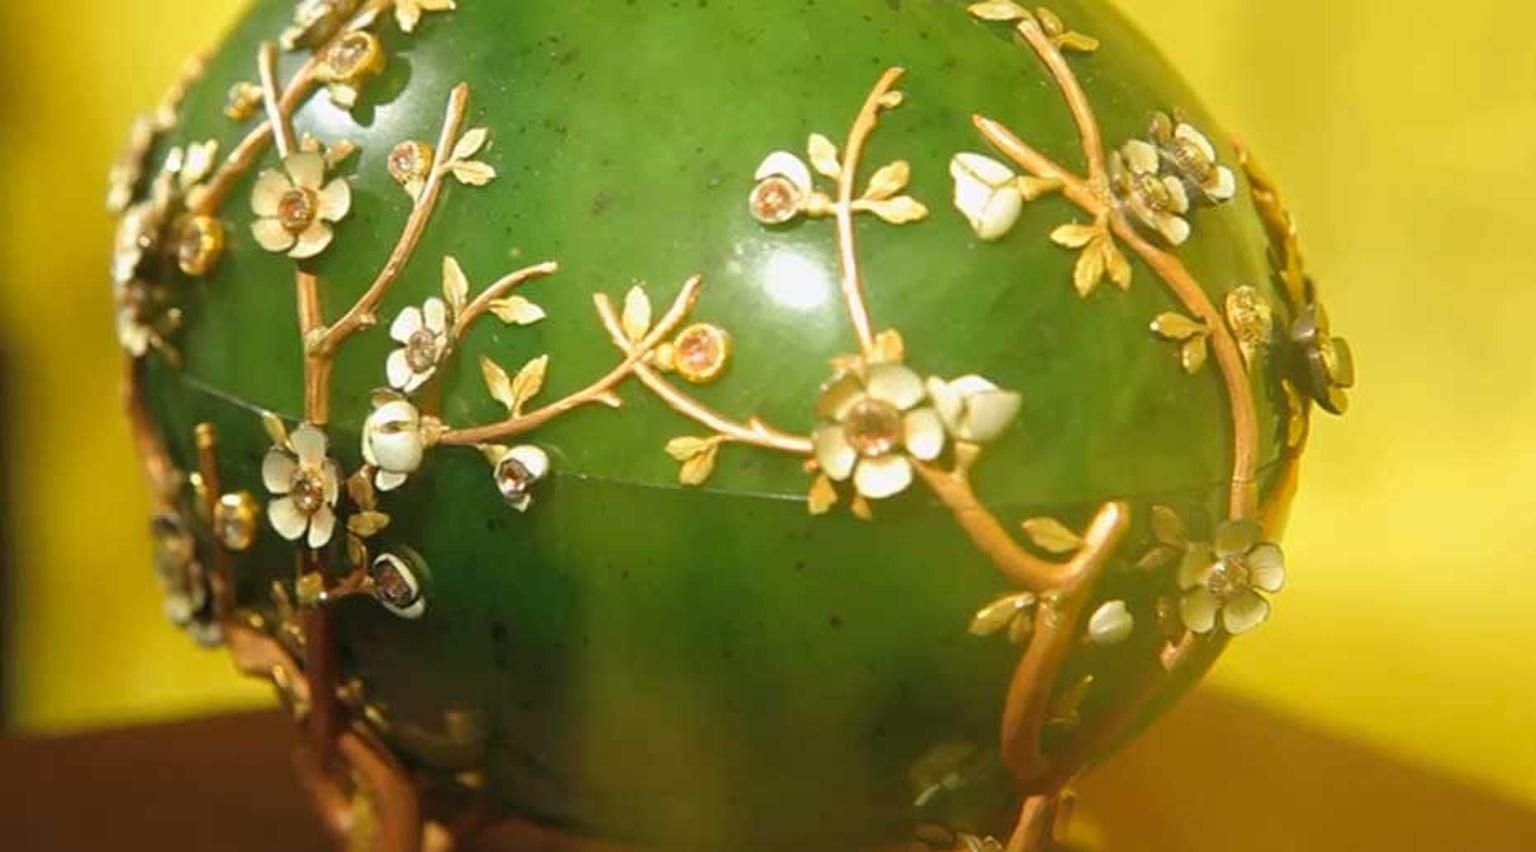 The 1901 Fabergé Apple Blossom Easter Egg, currently on show at Harrods as part of the 'A Fabergé Easter at Harrods' event, is rumoured to be worth £30 million